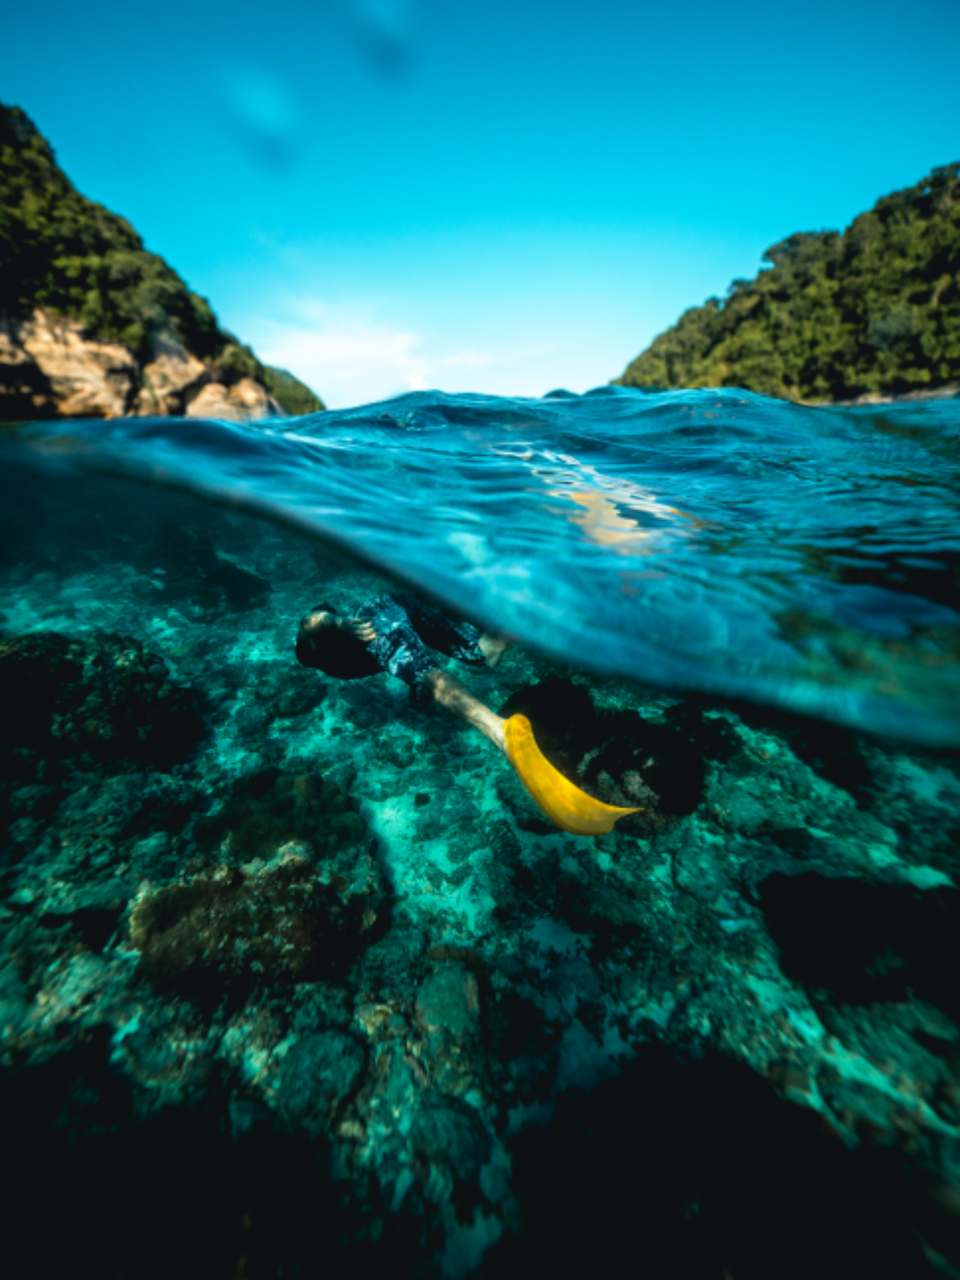 snorkeling ocean travel man yellow fin flipper travel vacation holiday underwater blue sky people